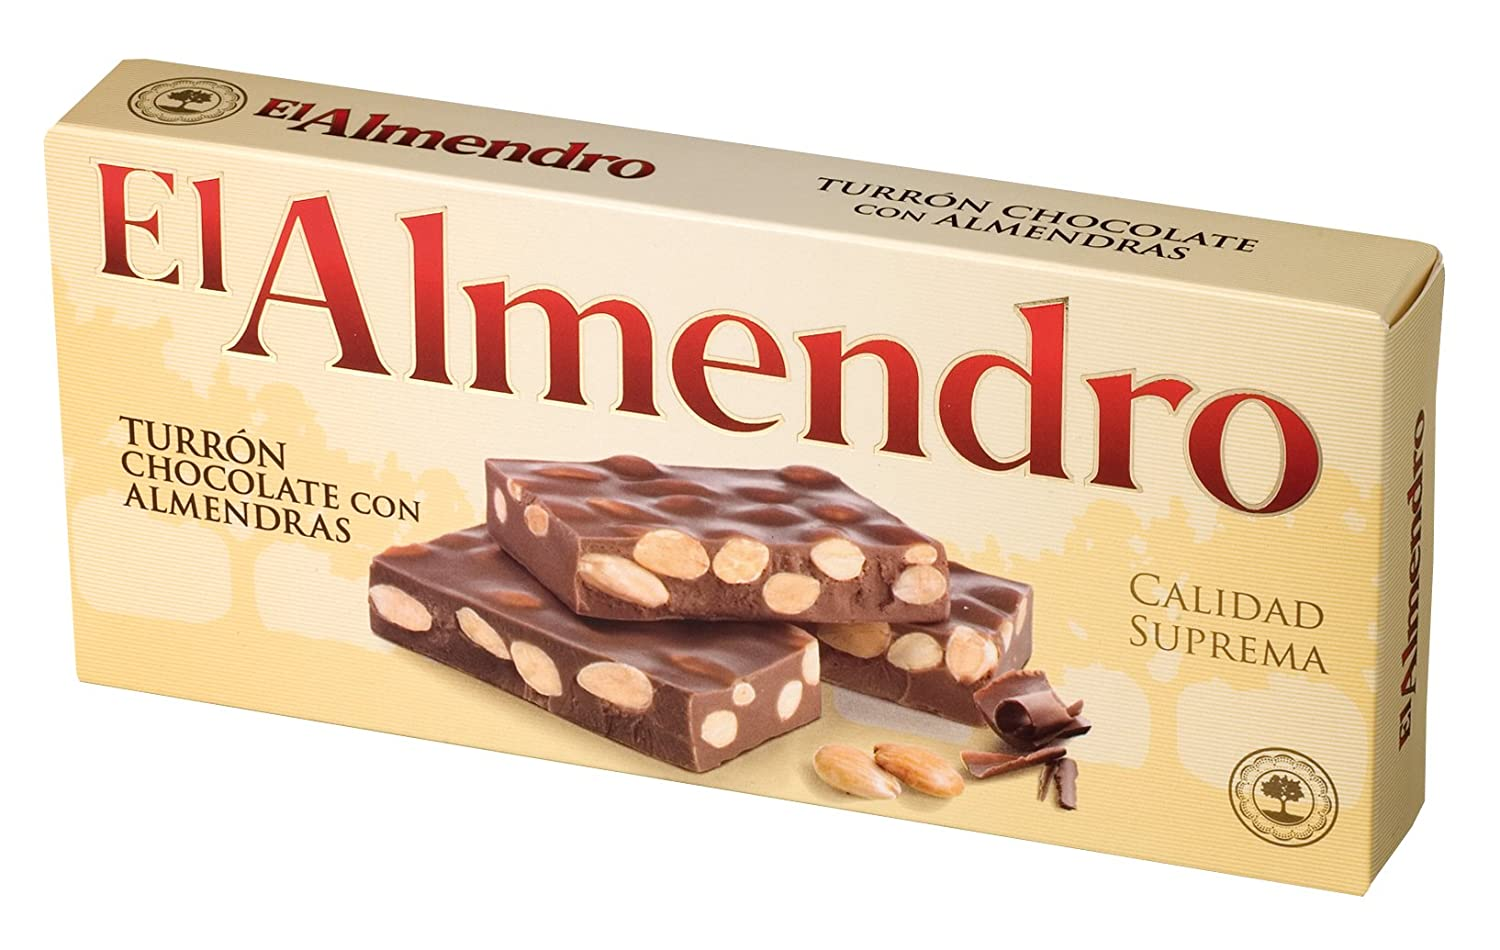 Amazon.com : El Almendro Turron Chocolate con Almendras (200g) - Milk chocolate with roasted almonds : Grocery & Gourmet Food